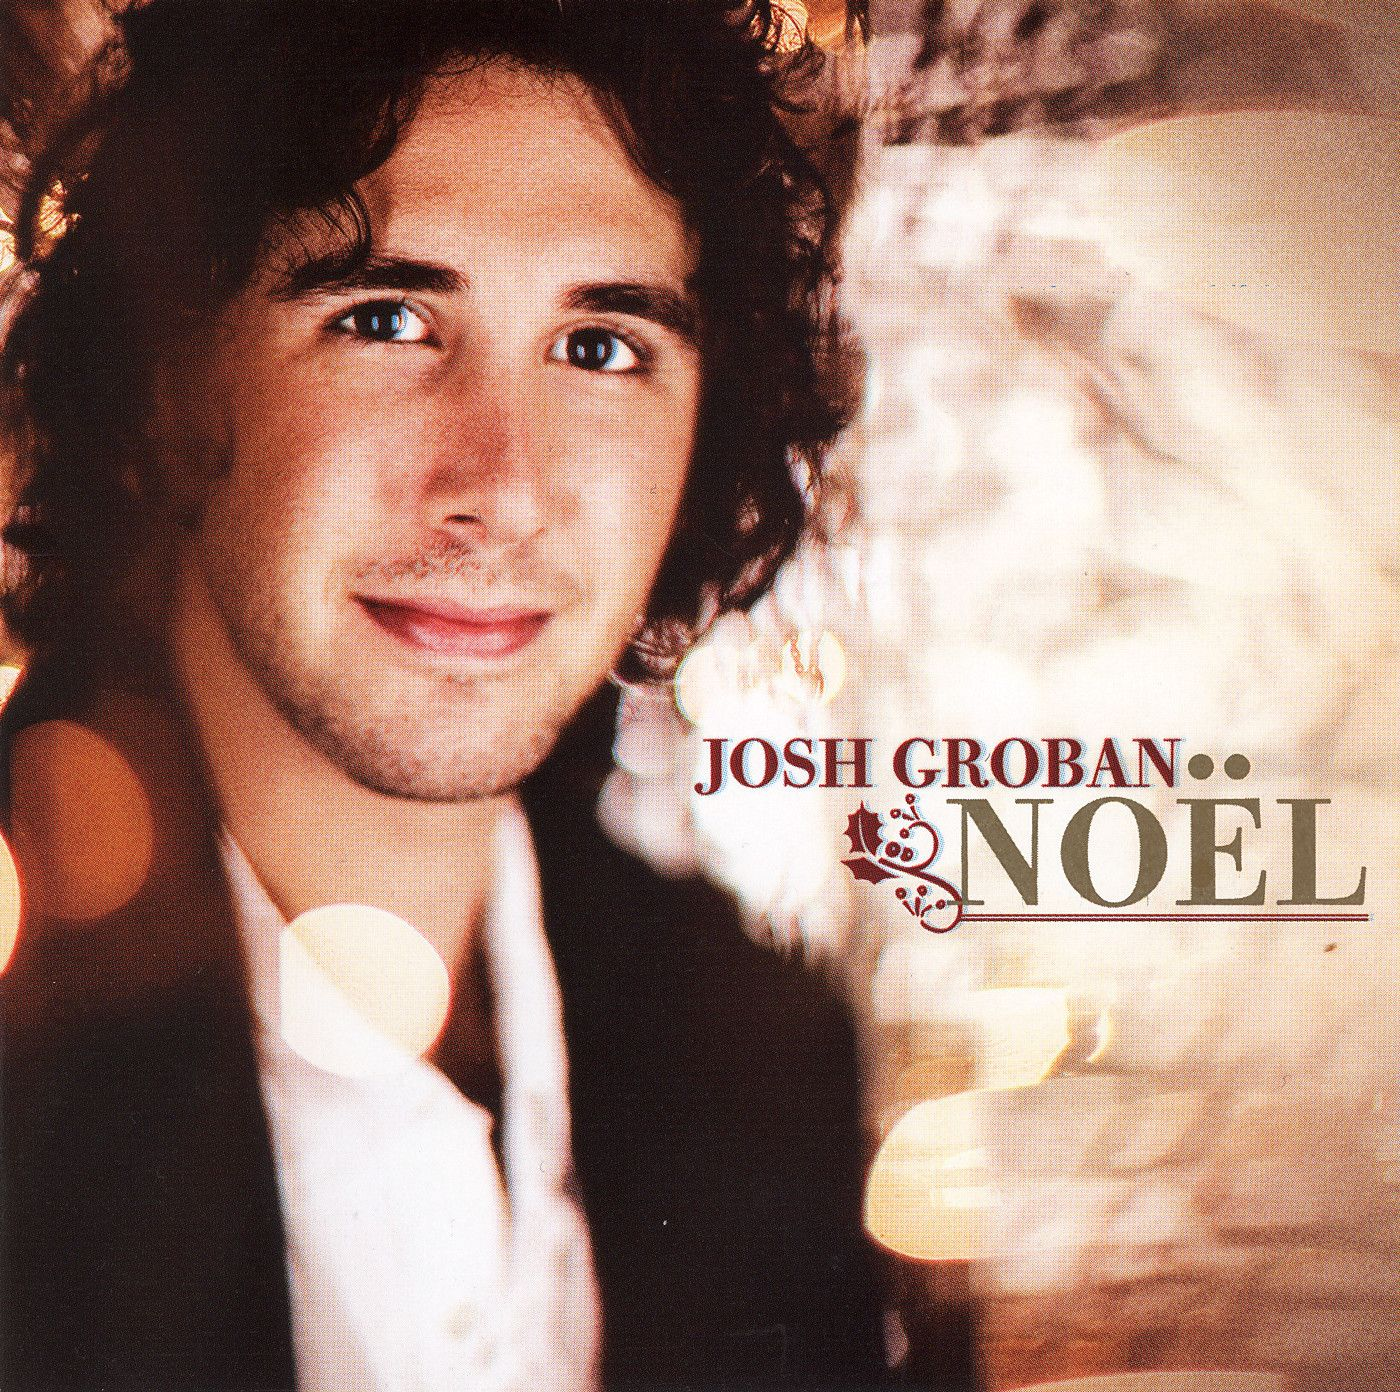 Josh Groban - Noel album cover